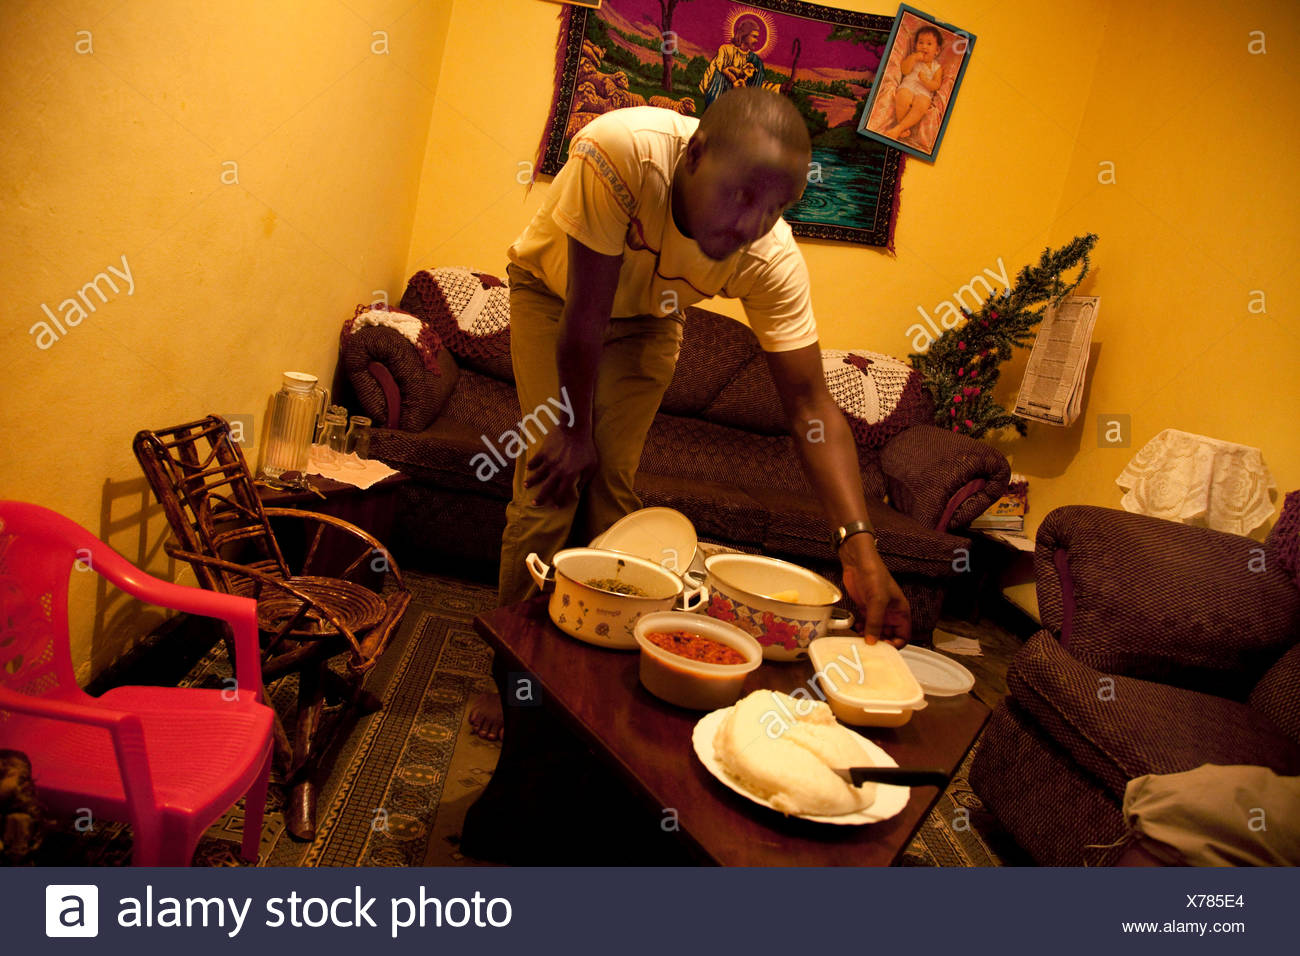 Man putting food on the table in a christian household, christian brodery on the wall in the background, Rwanda, Nyamirambo, Kigali - Stock Image